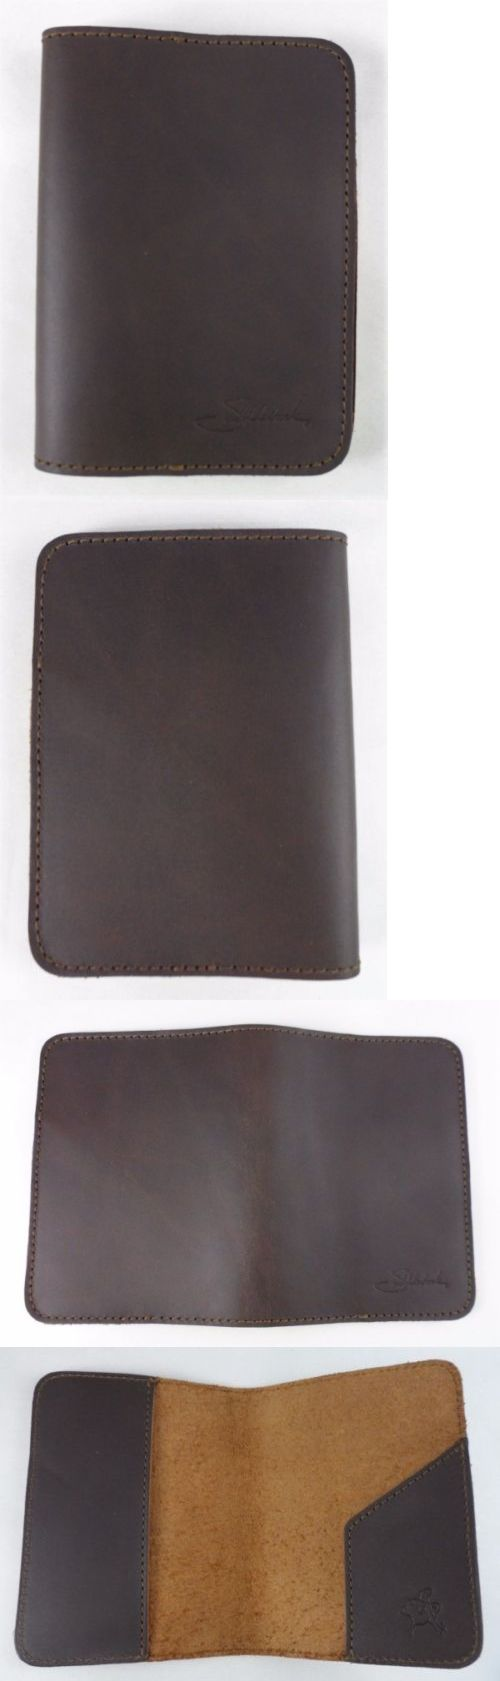 Other Unisex Accessories 155191: New Saddleback Leather Passport Sleeve - Dark Coffee Brown - Script Logo Retired -> BUY IT NOW ONLY: $75 on eBay!